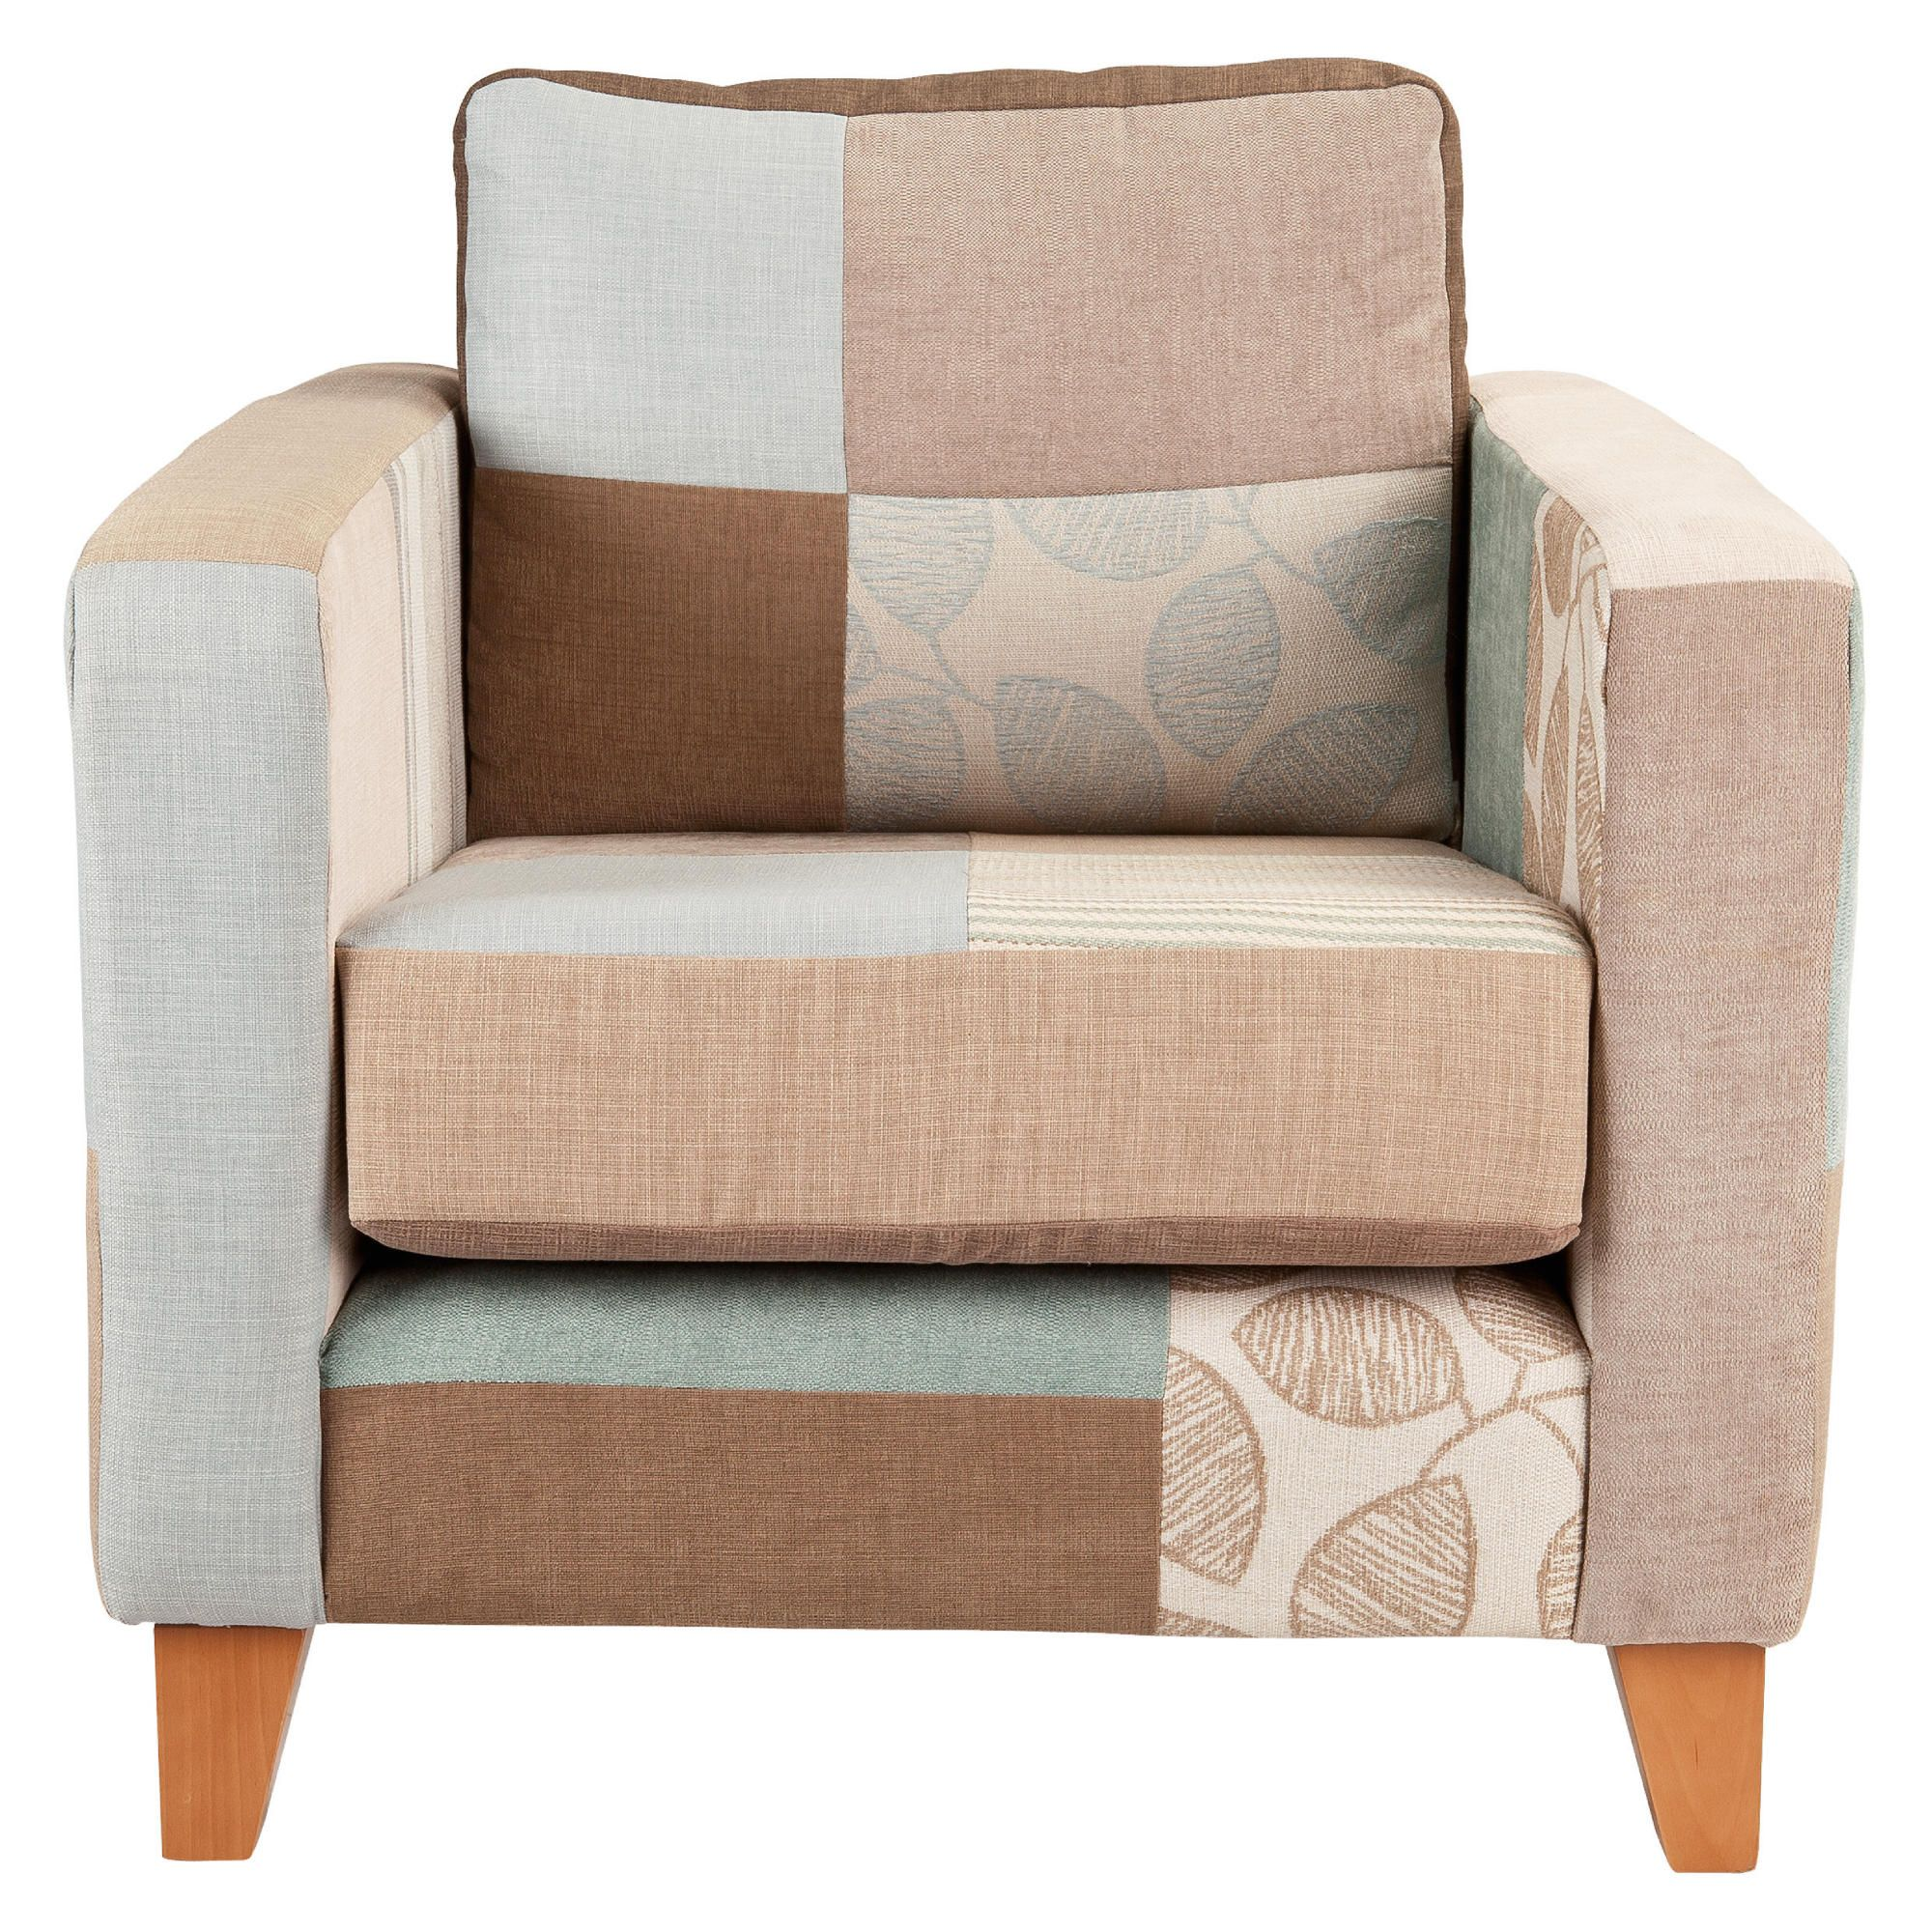 Patchwork chair natural at Tesco Direct